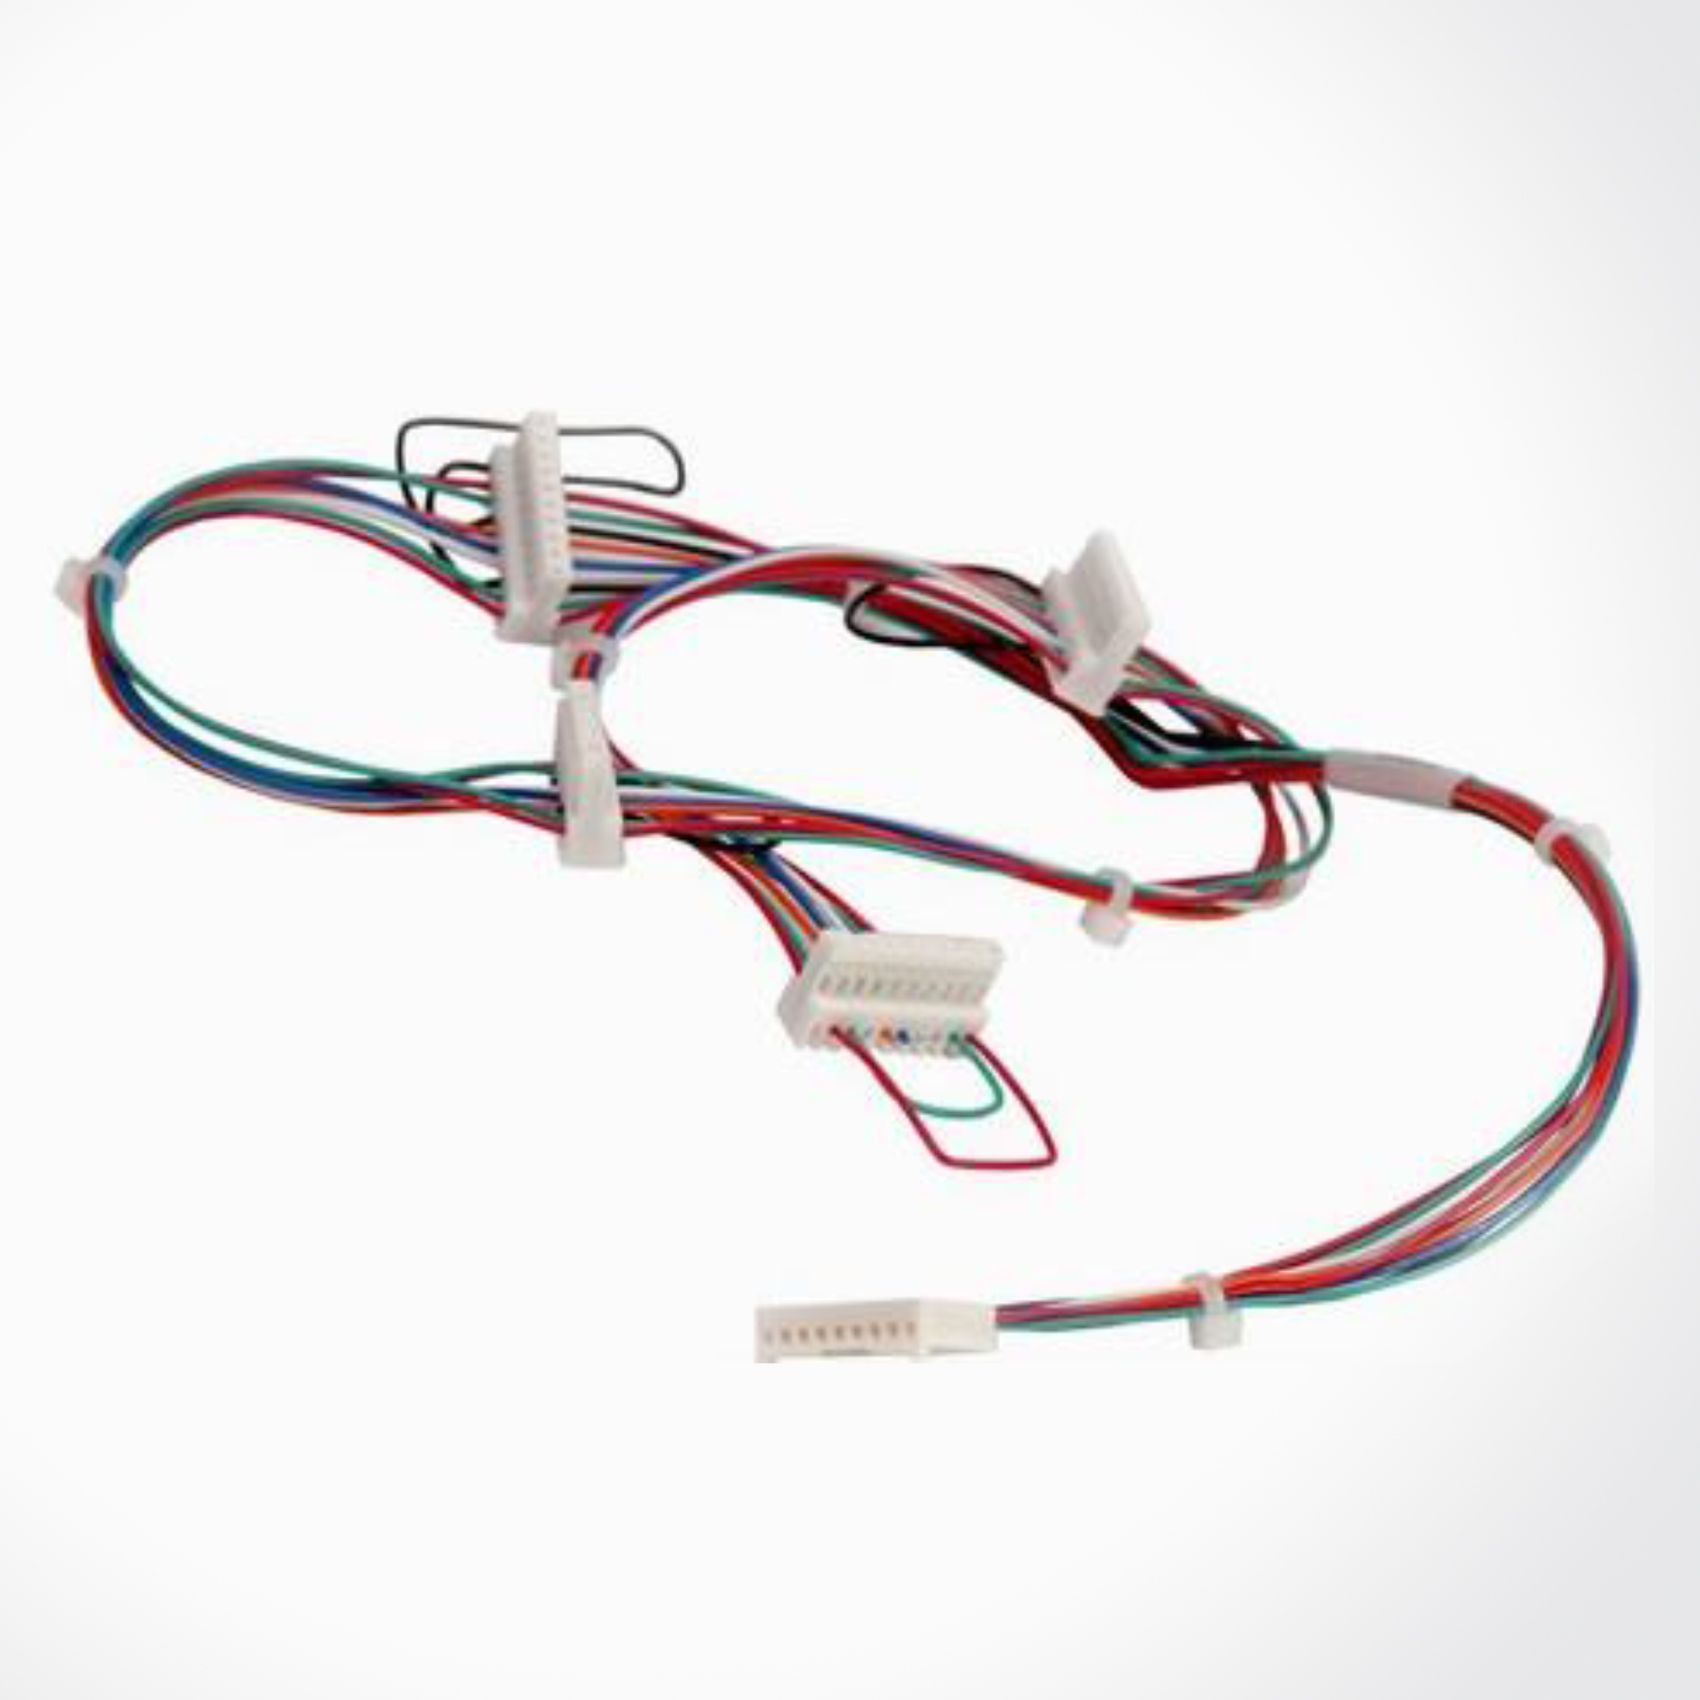 We also manufacture and supply wiring harness for cars cables, Travelling  cable harnesses, control